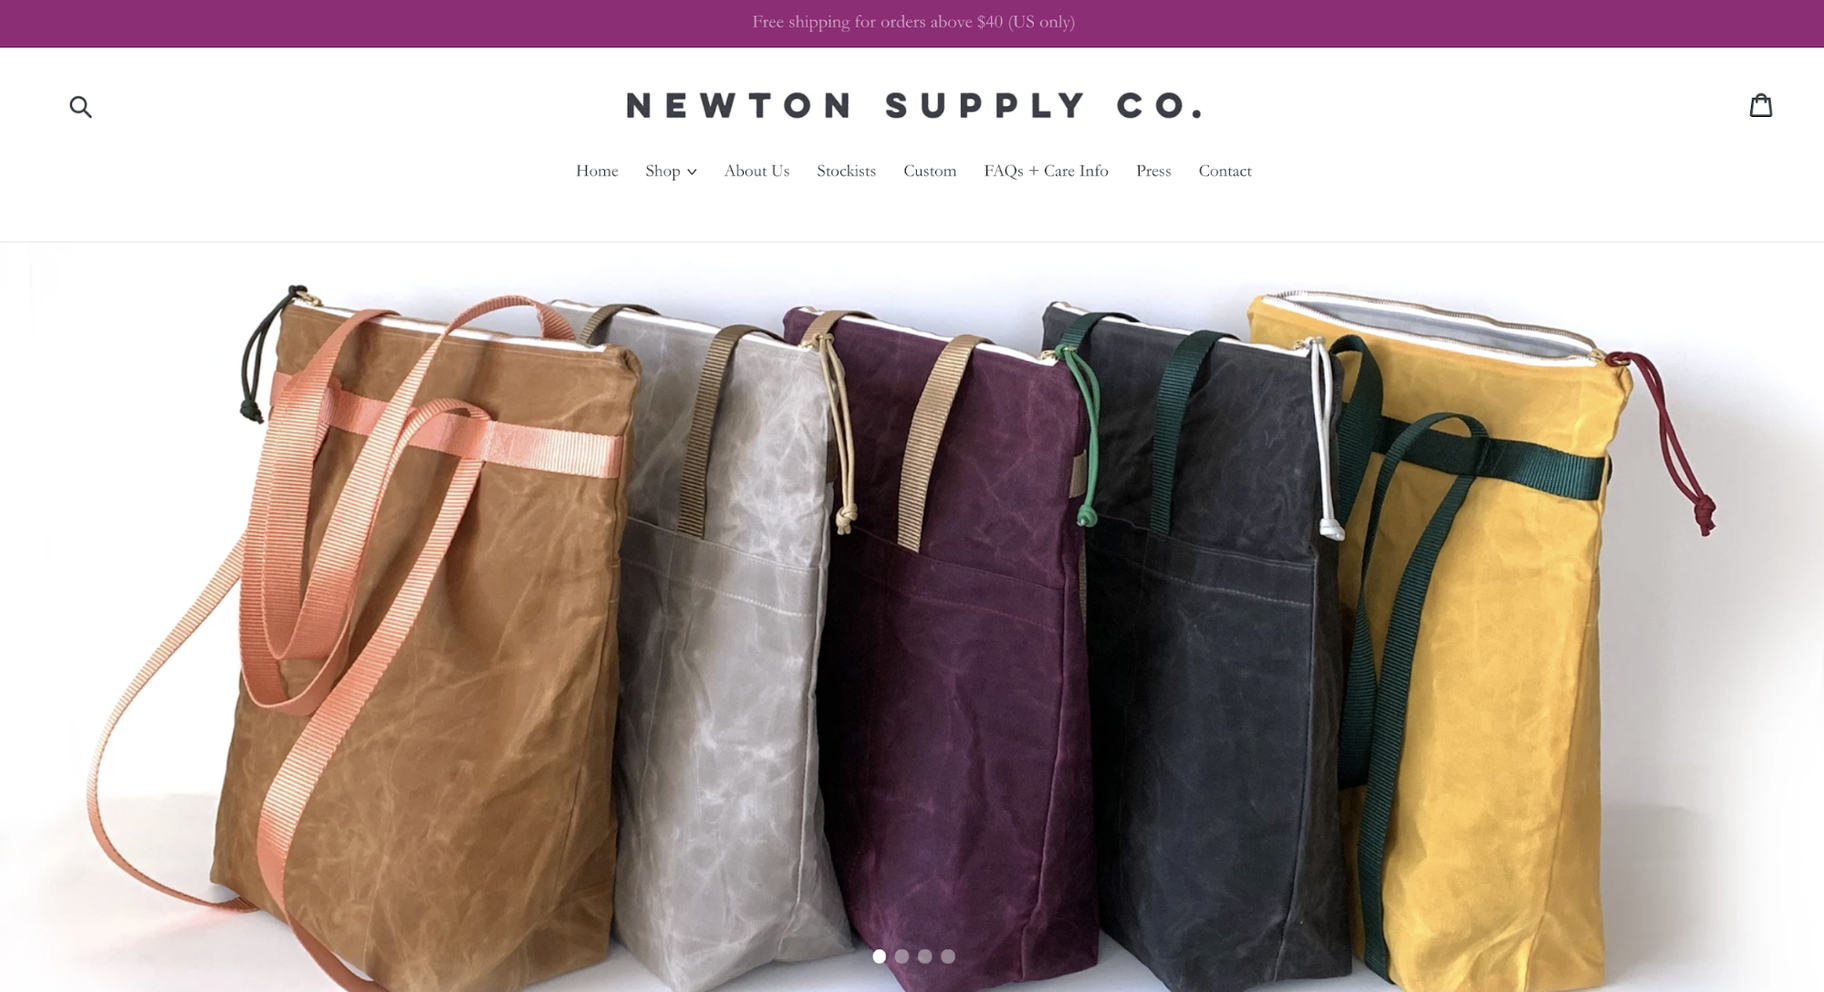 Small Business Website Example: Newton Supply Co.